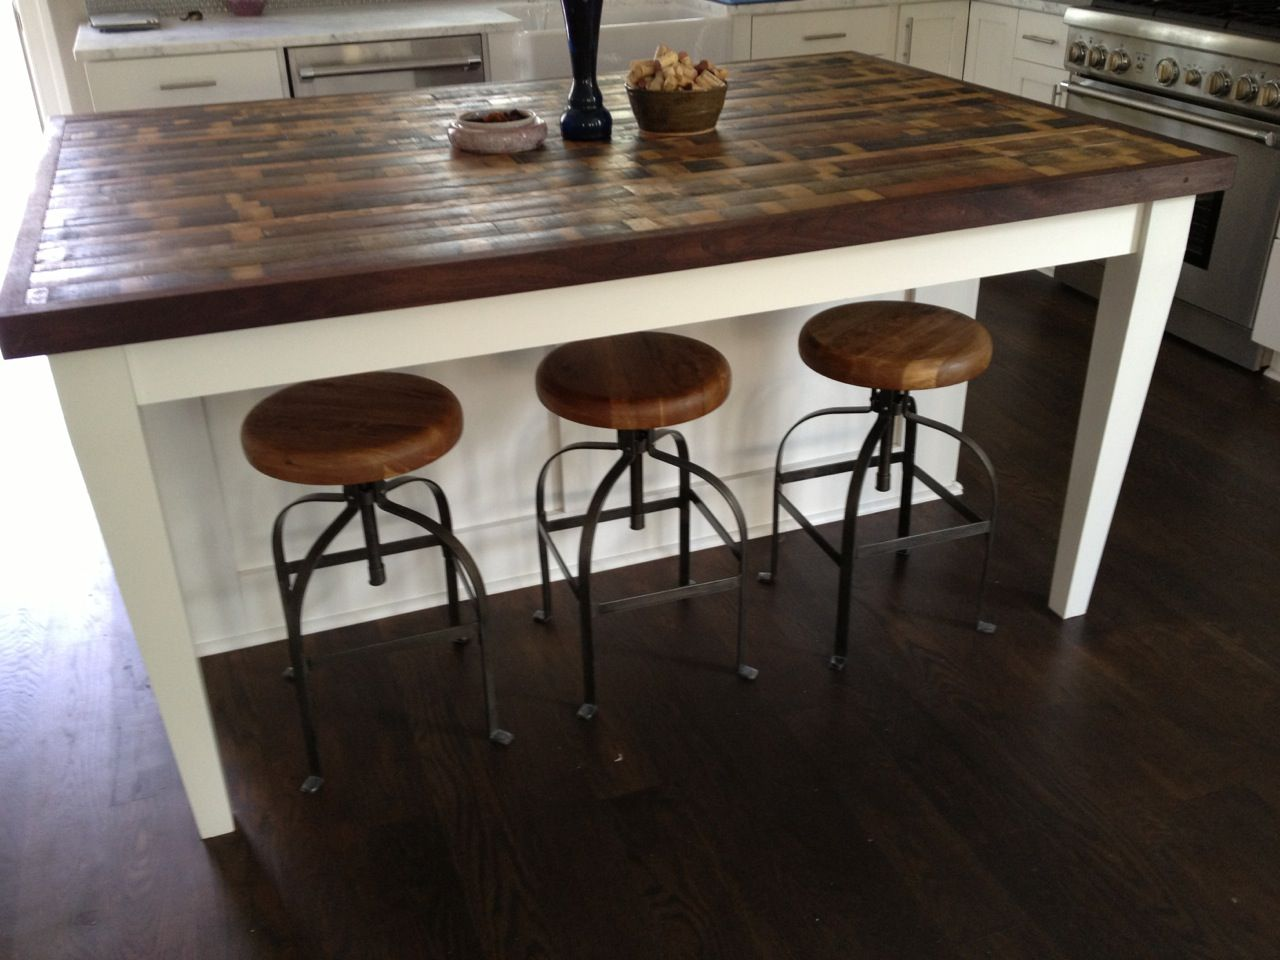 Kitchen Island Diy best 25+ diy kitchen island ideas on pinterest | build kitchen